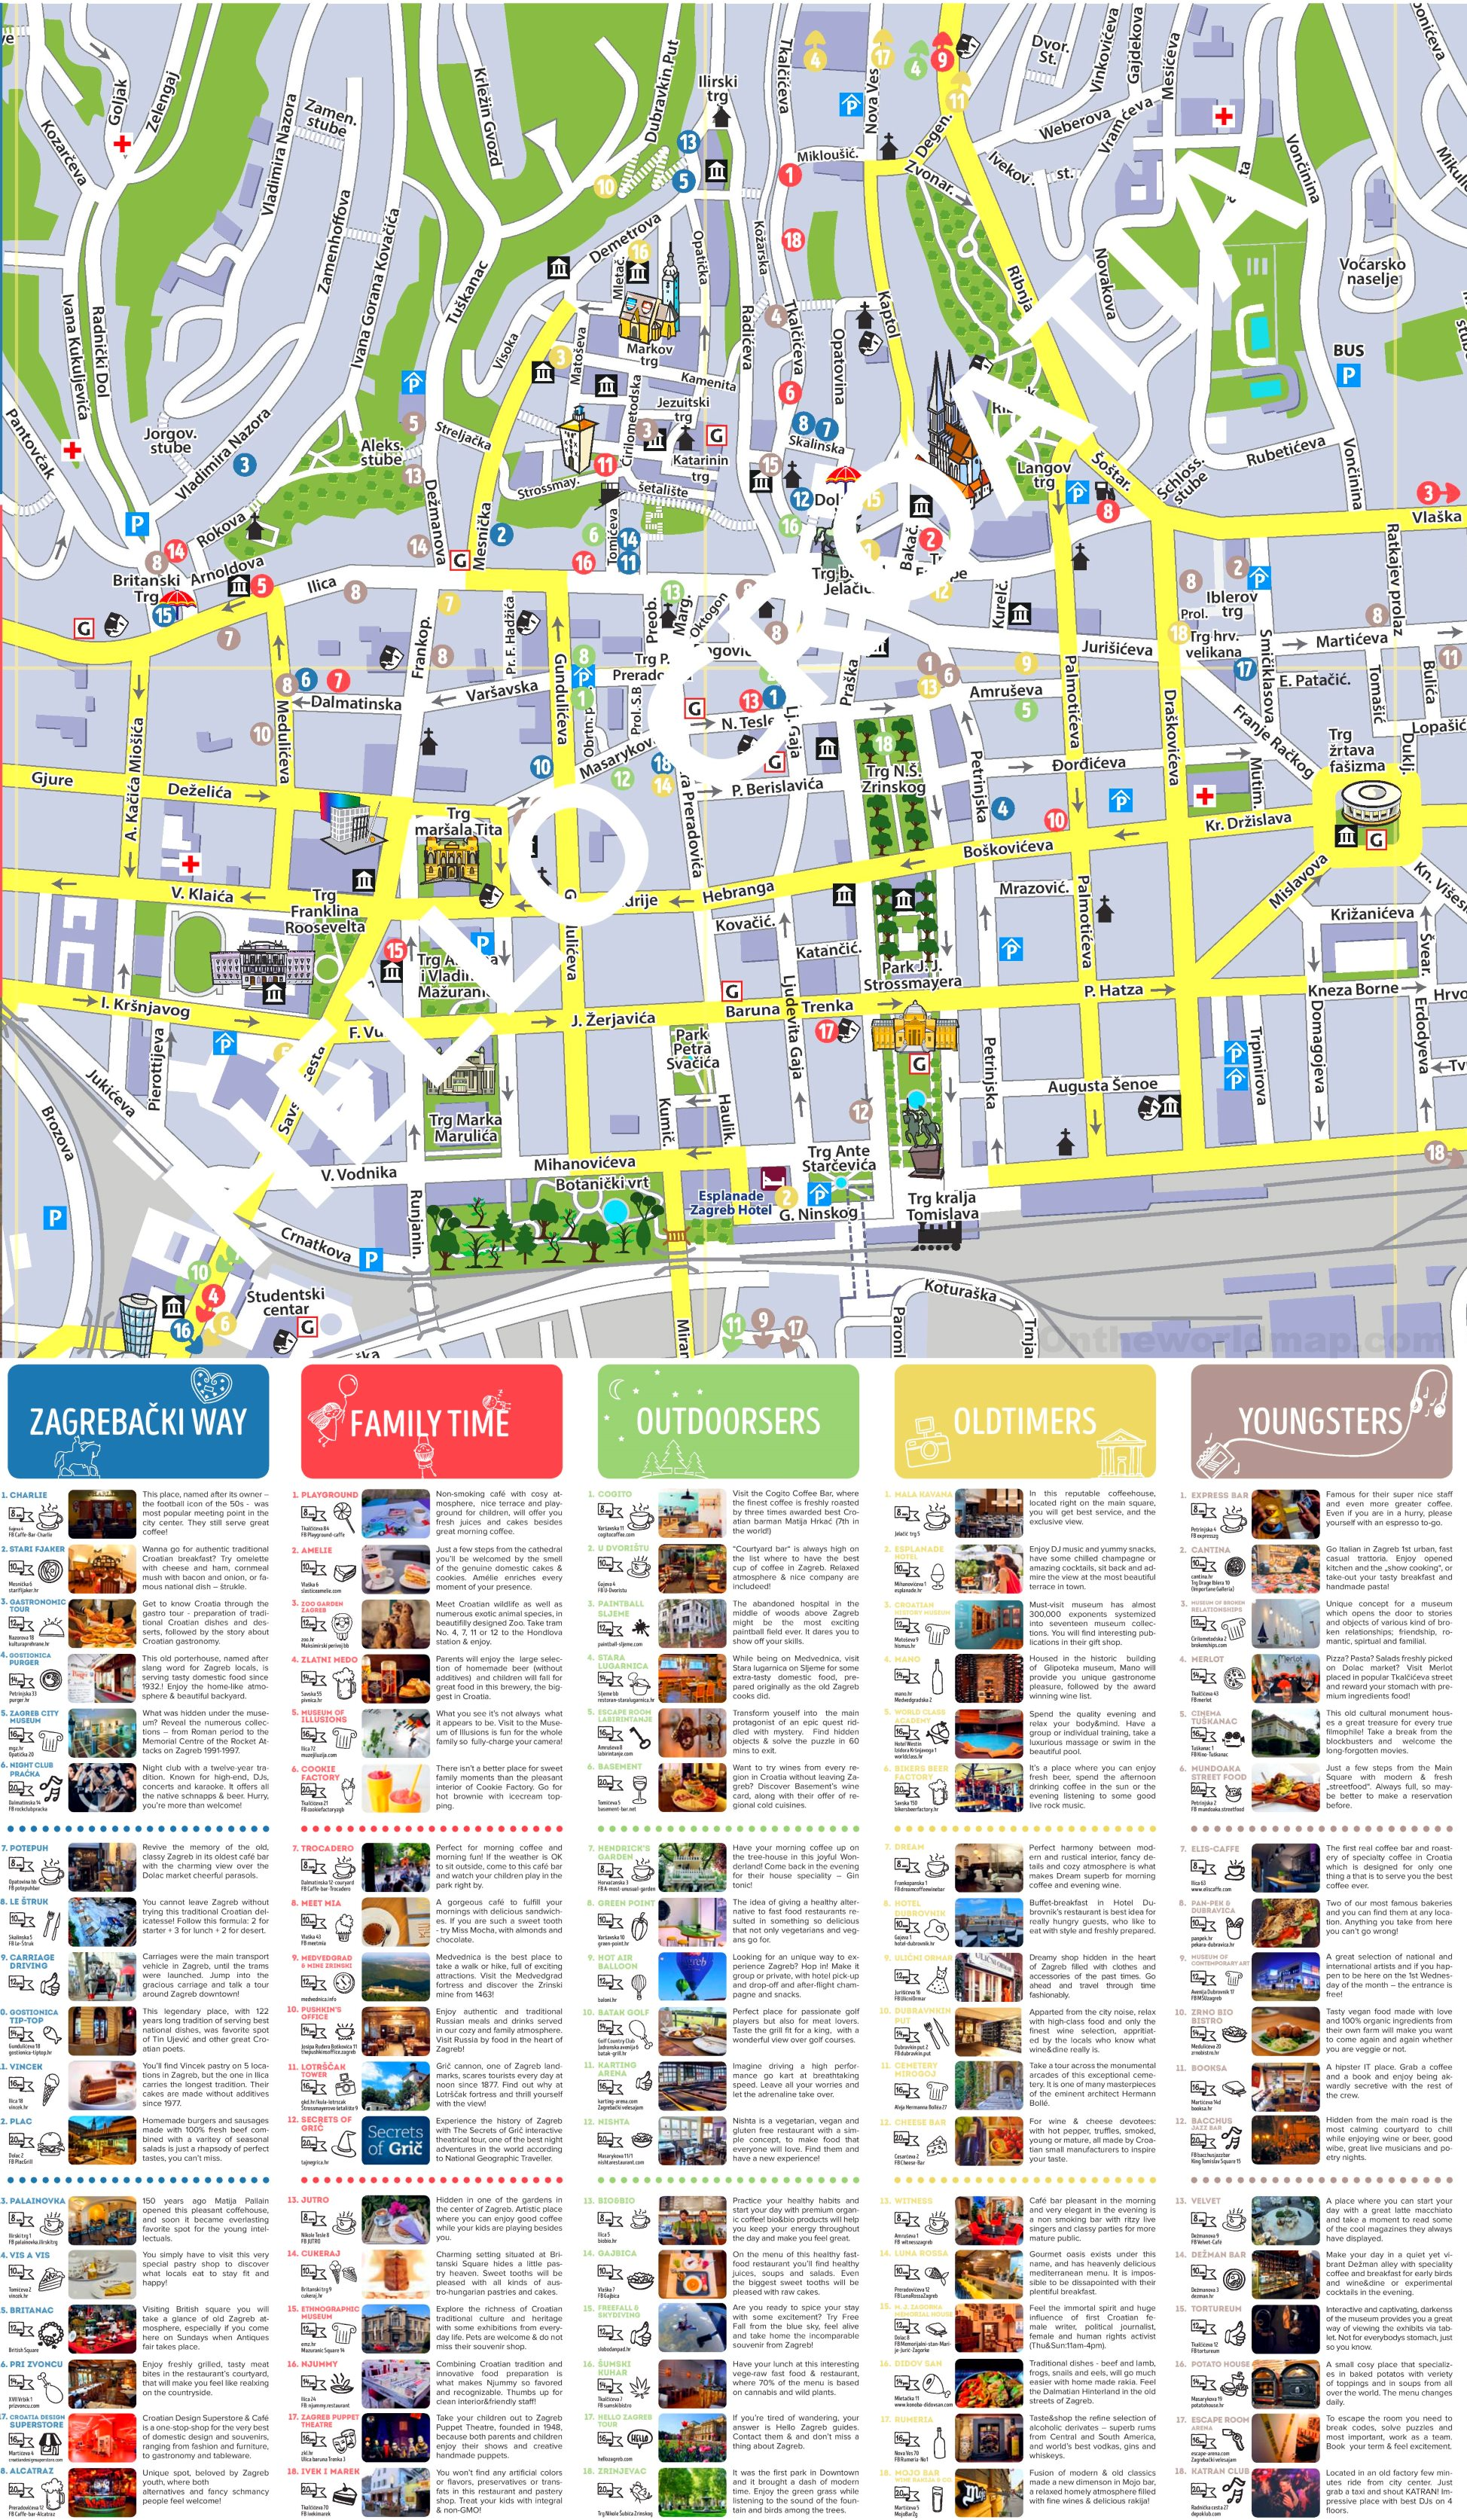 Zagreb tourist attractions map on rijeka city map, opatija city map, prizren city map, vukovar city map, treviso city map, cotonou city map, belgrade city map, film city map, geneva city map, zug city map, serbia city map, goteborg city map, perth city map, pretend city map, cluj city map, santiago city map, pula city map, alicante city map, port of spain city map, marbella city map,